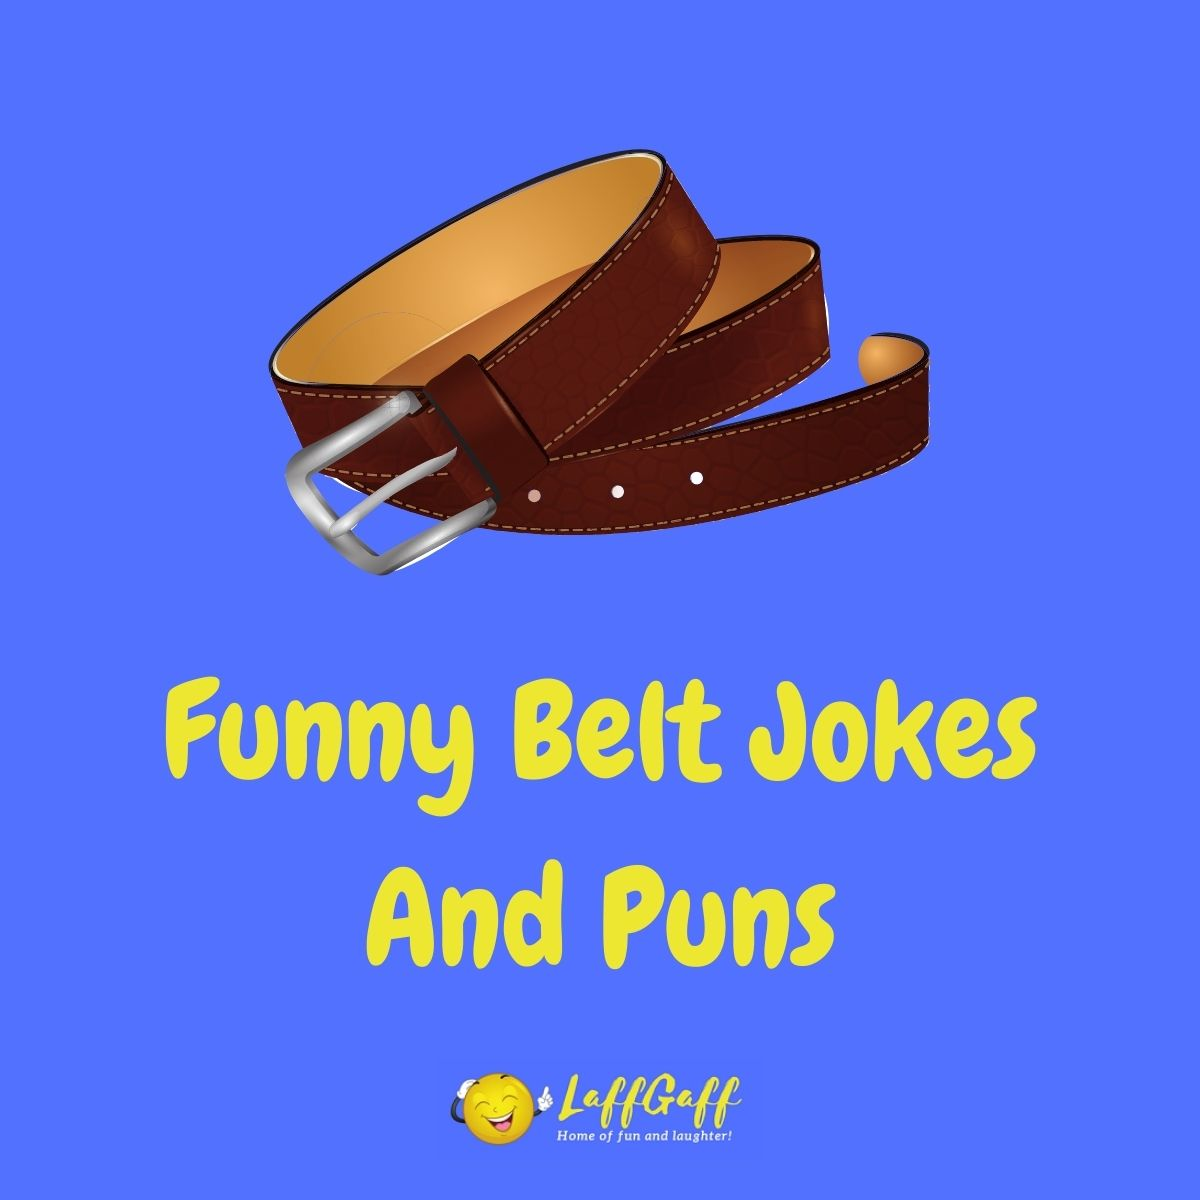 Featured image for a page of funny belt jokes and puns.